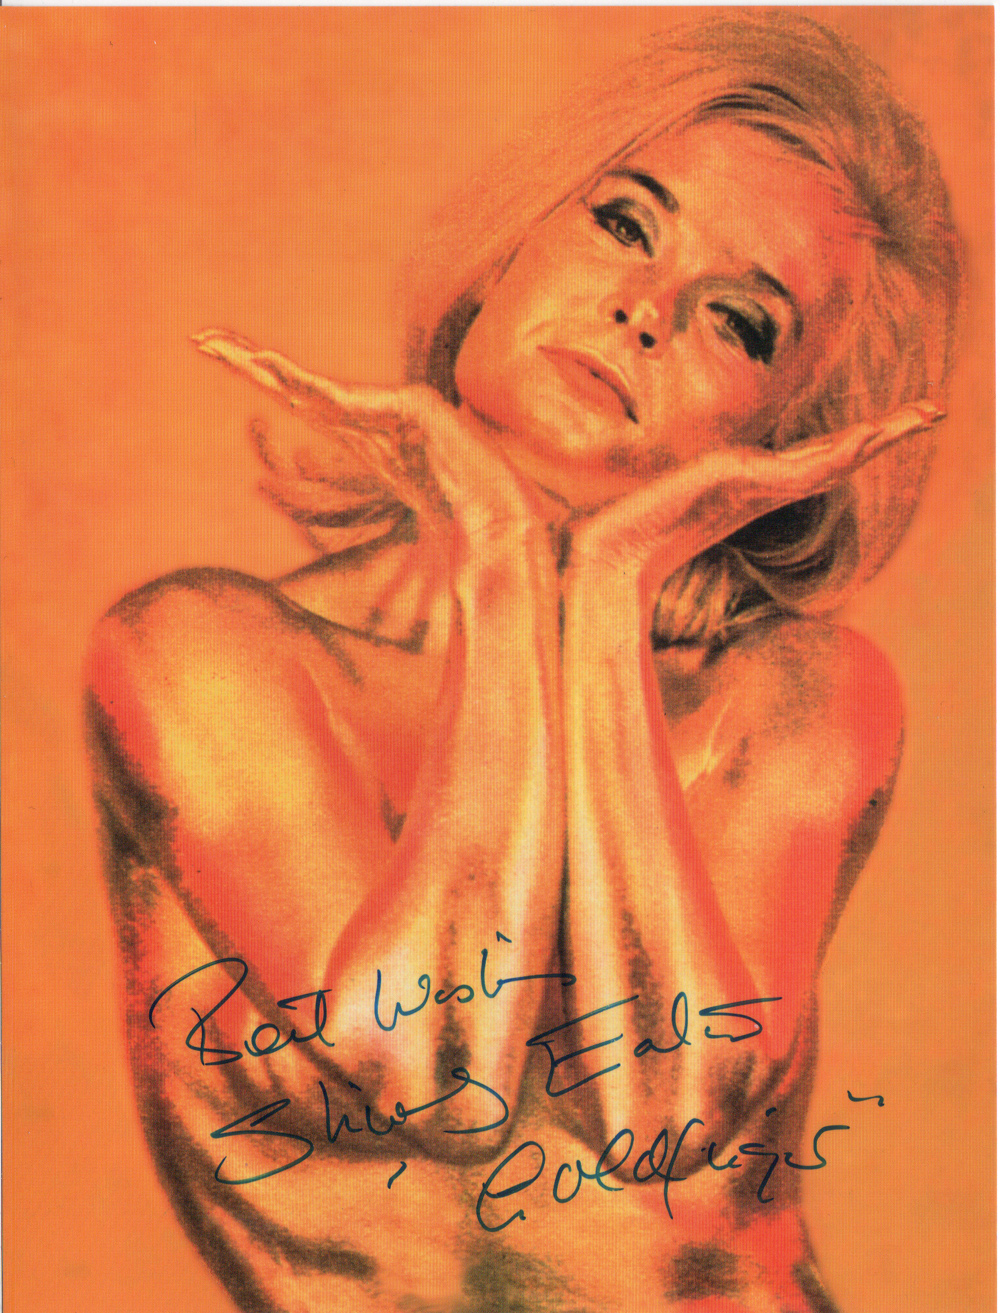 Best Wishes Shirley Eaton (played Jill Masterson in Goldfinger 1964)  to James Bond 007 Museum in Nybro Sweden and Gunnar James Bond Schäfer many thanks...